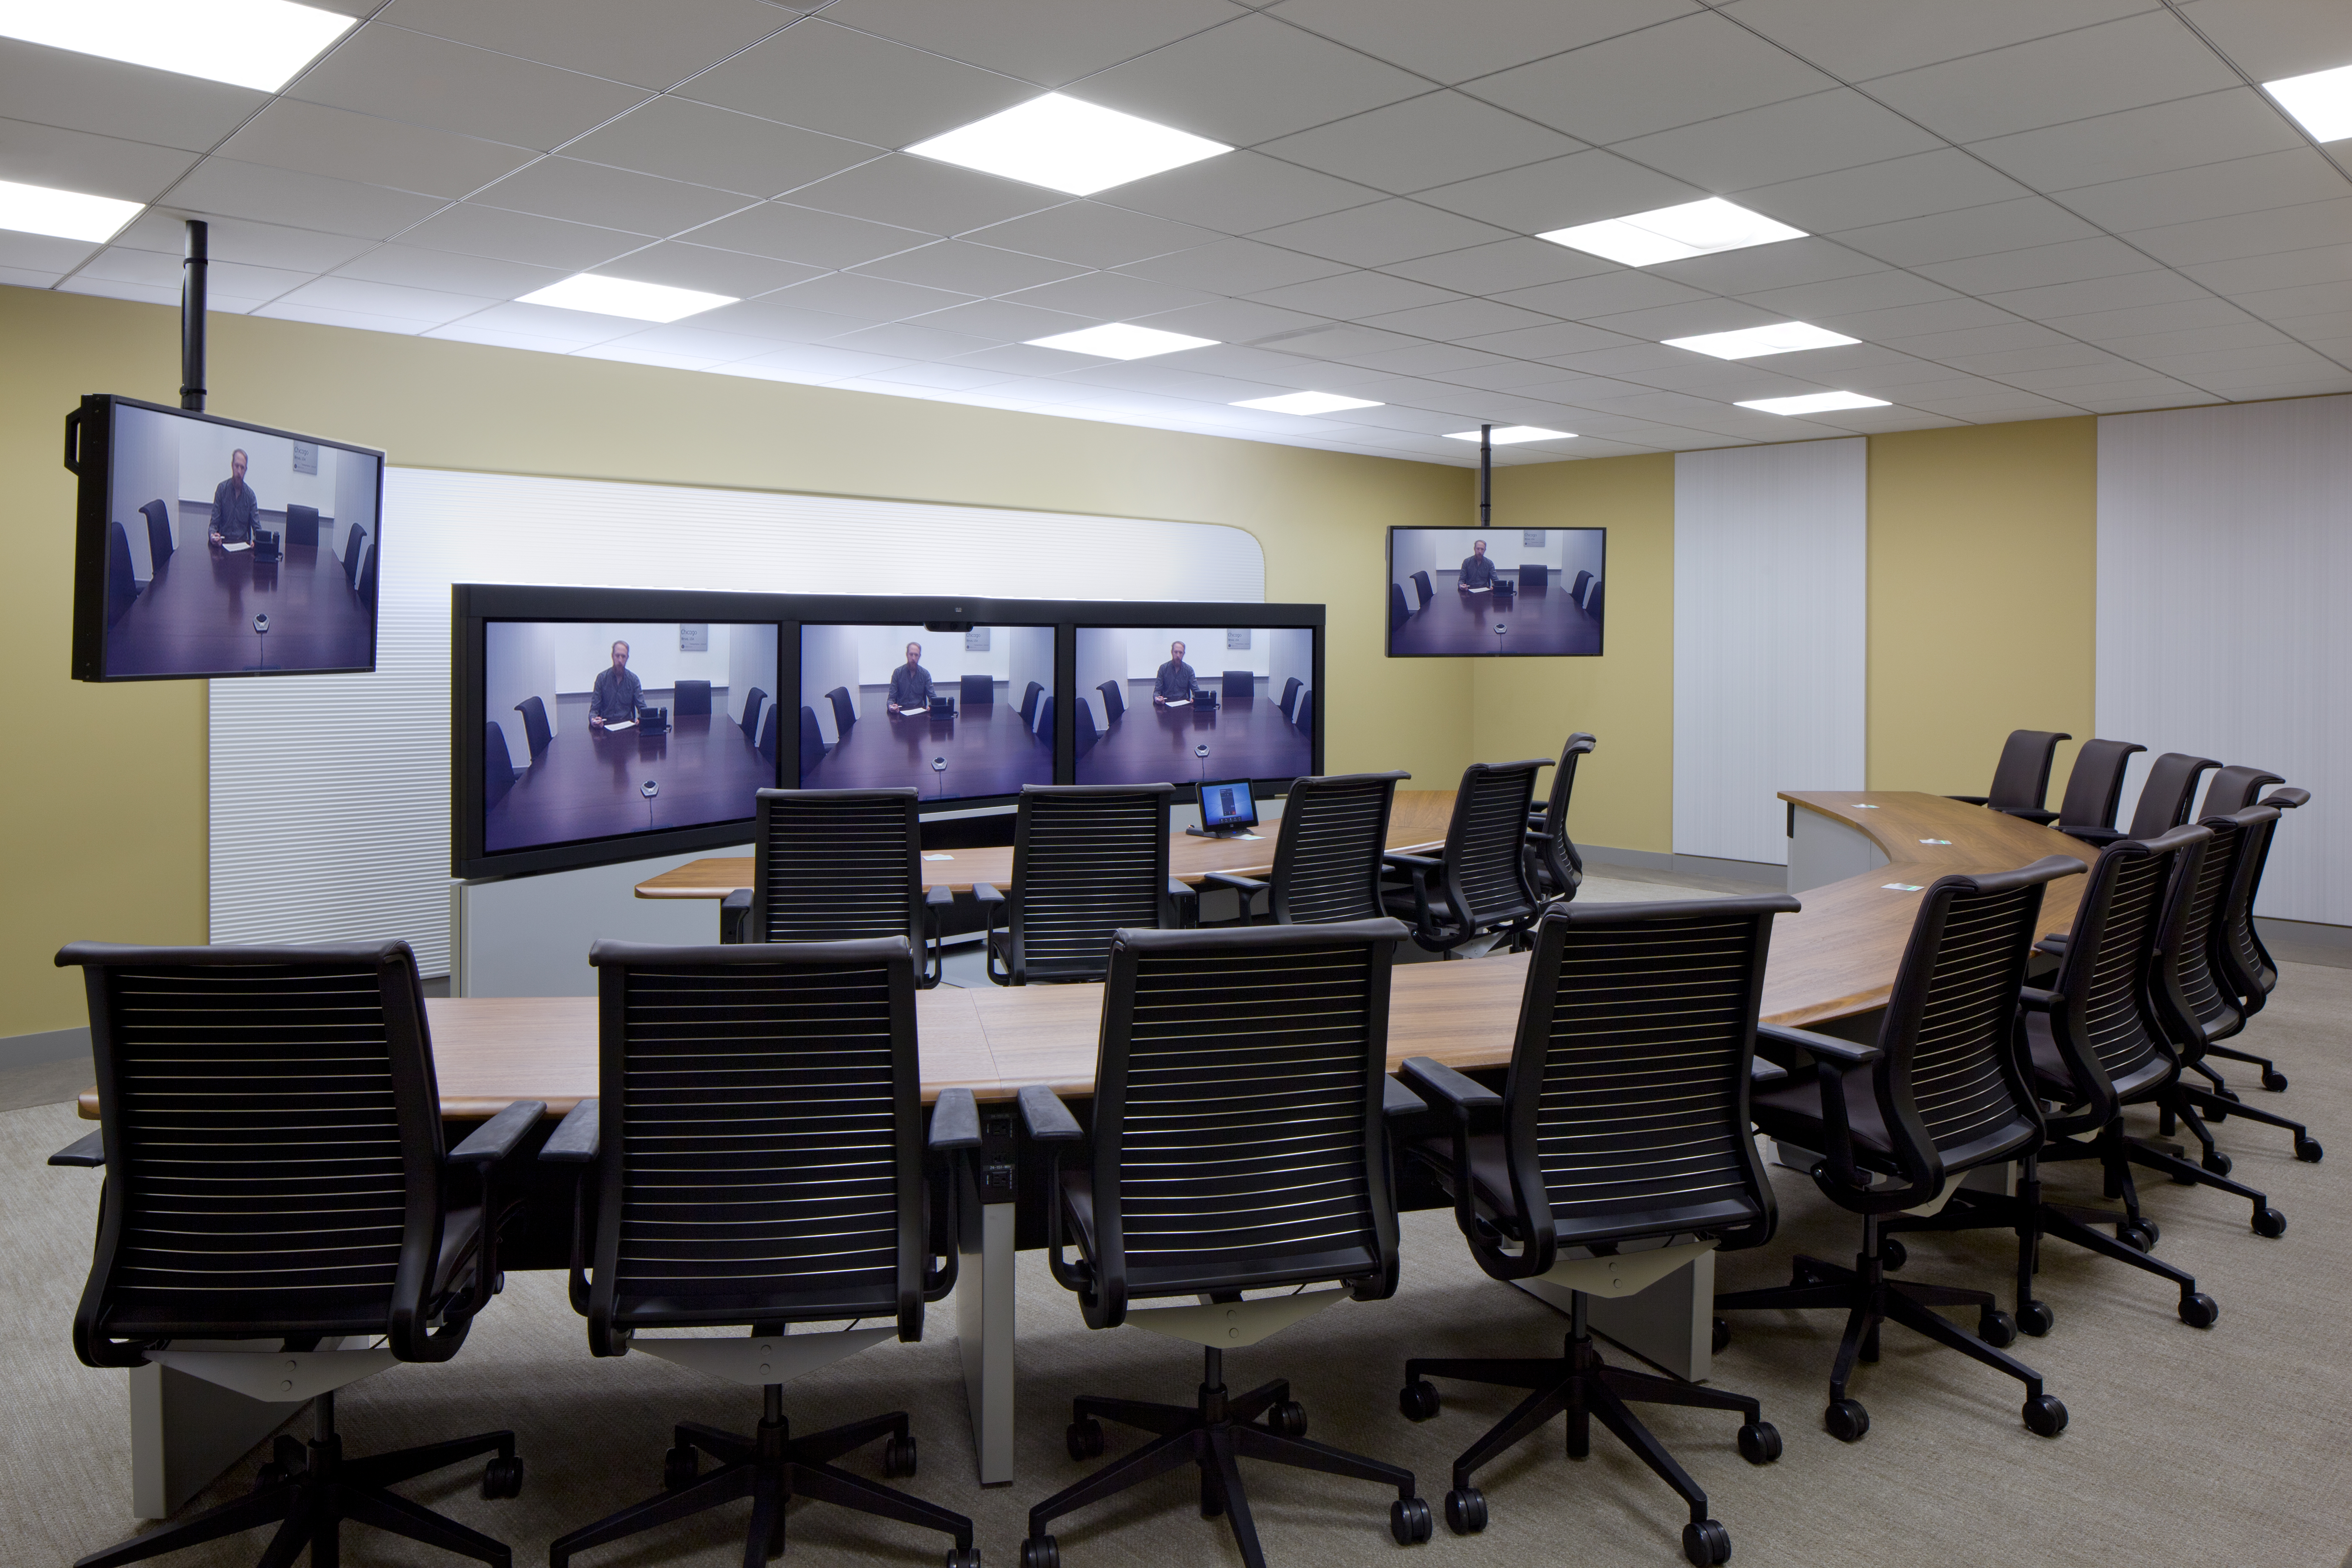 Ge S Led Lighting Fixtures Provide Energy And Cost Savings To Chicago Offices Ge Lighting